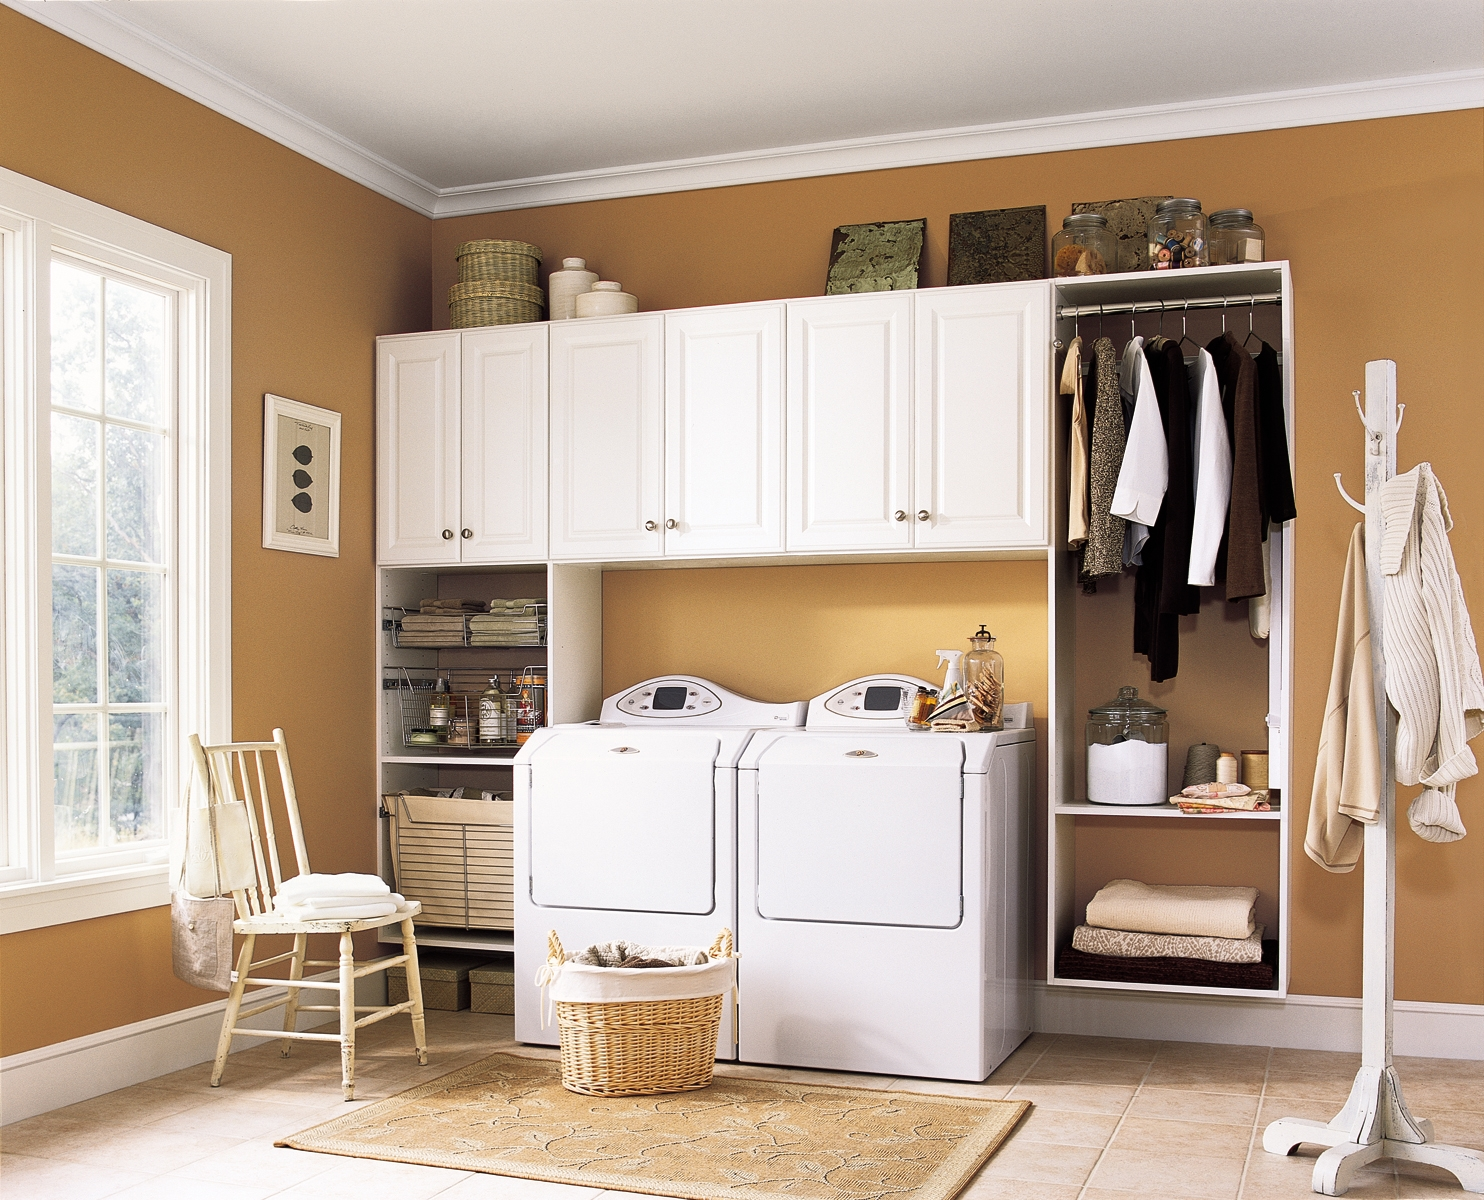 Magnificent Laundry Room Storage Ideas 1484 x 1200 · 1398 kB · jpeg